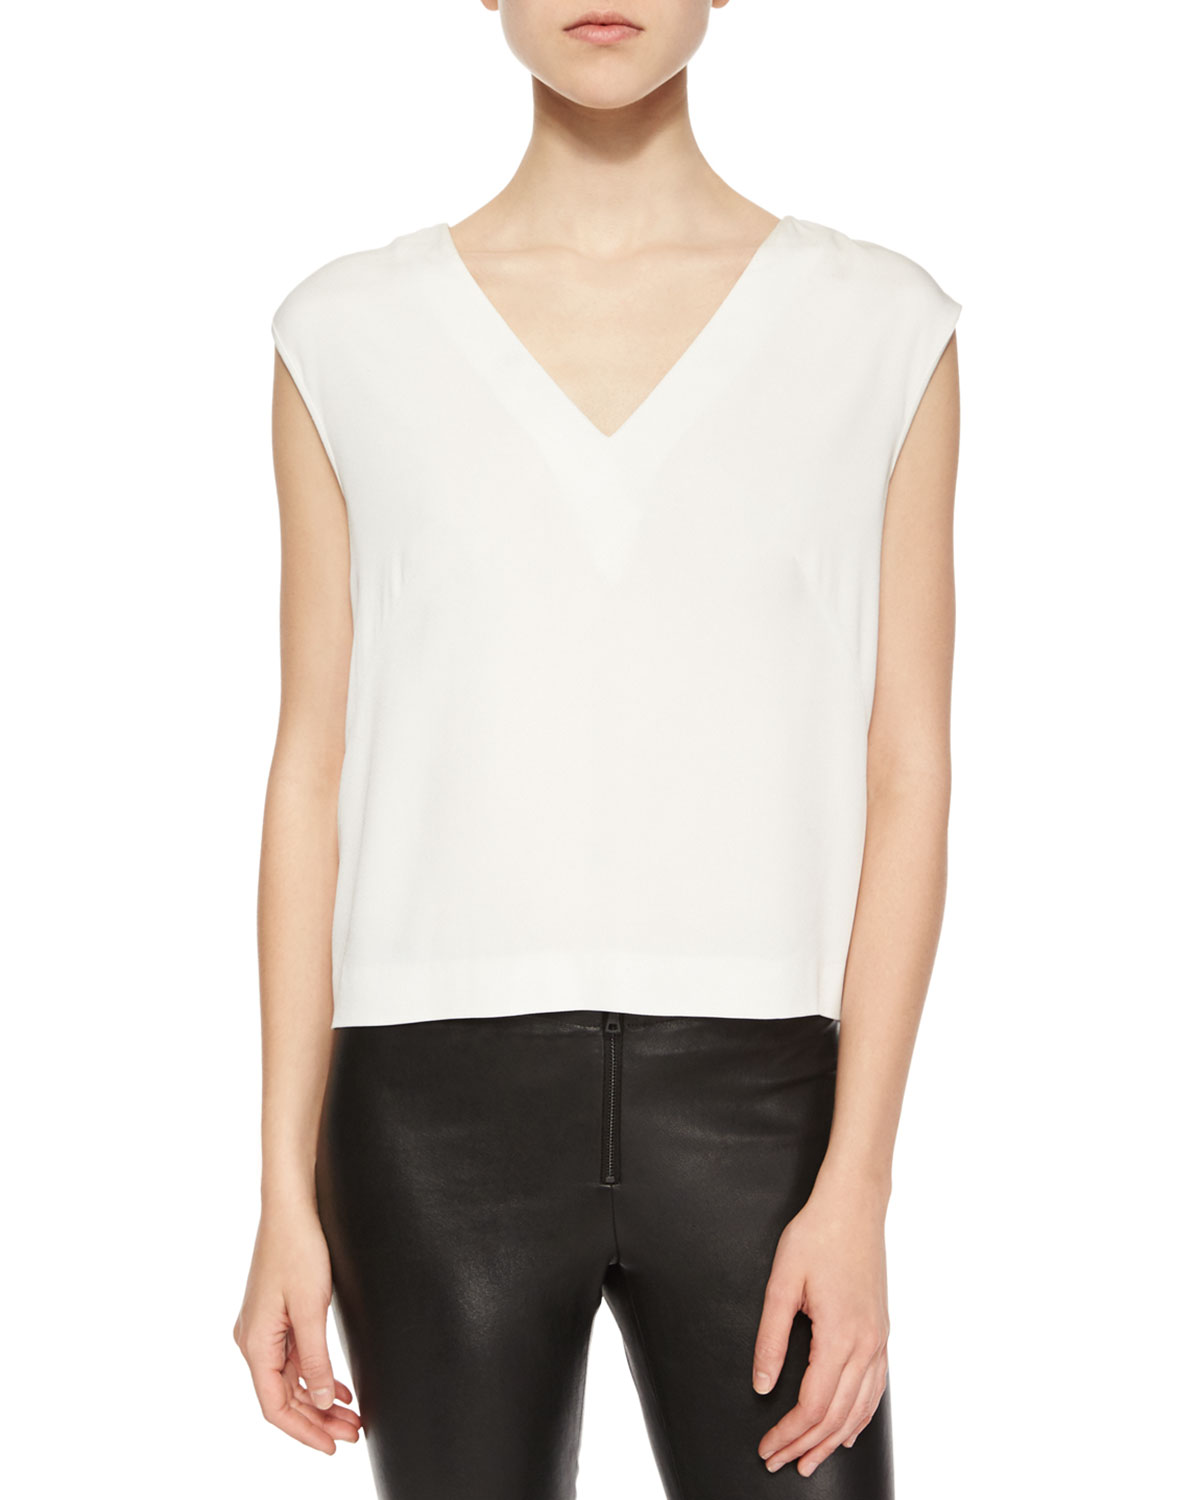 Sleeveless Back Cutout Crepe Top, Size: LARGE, ivory - Nicole Miller Artelier